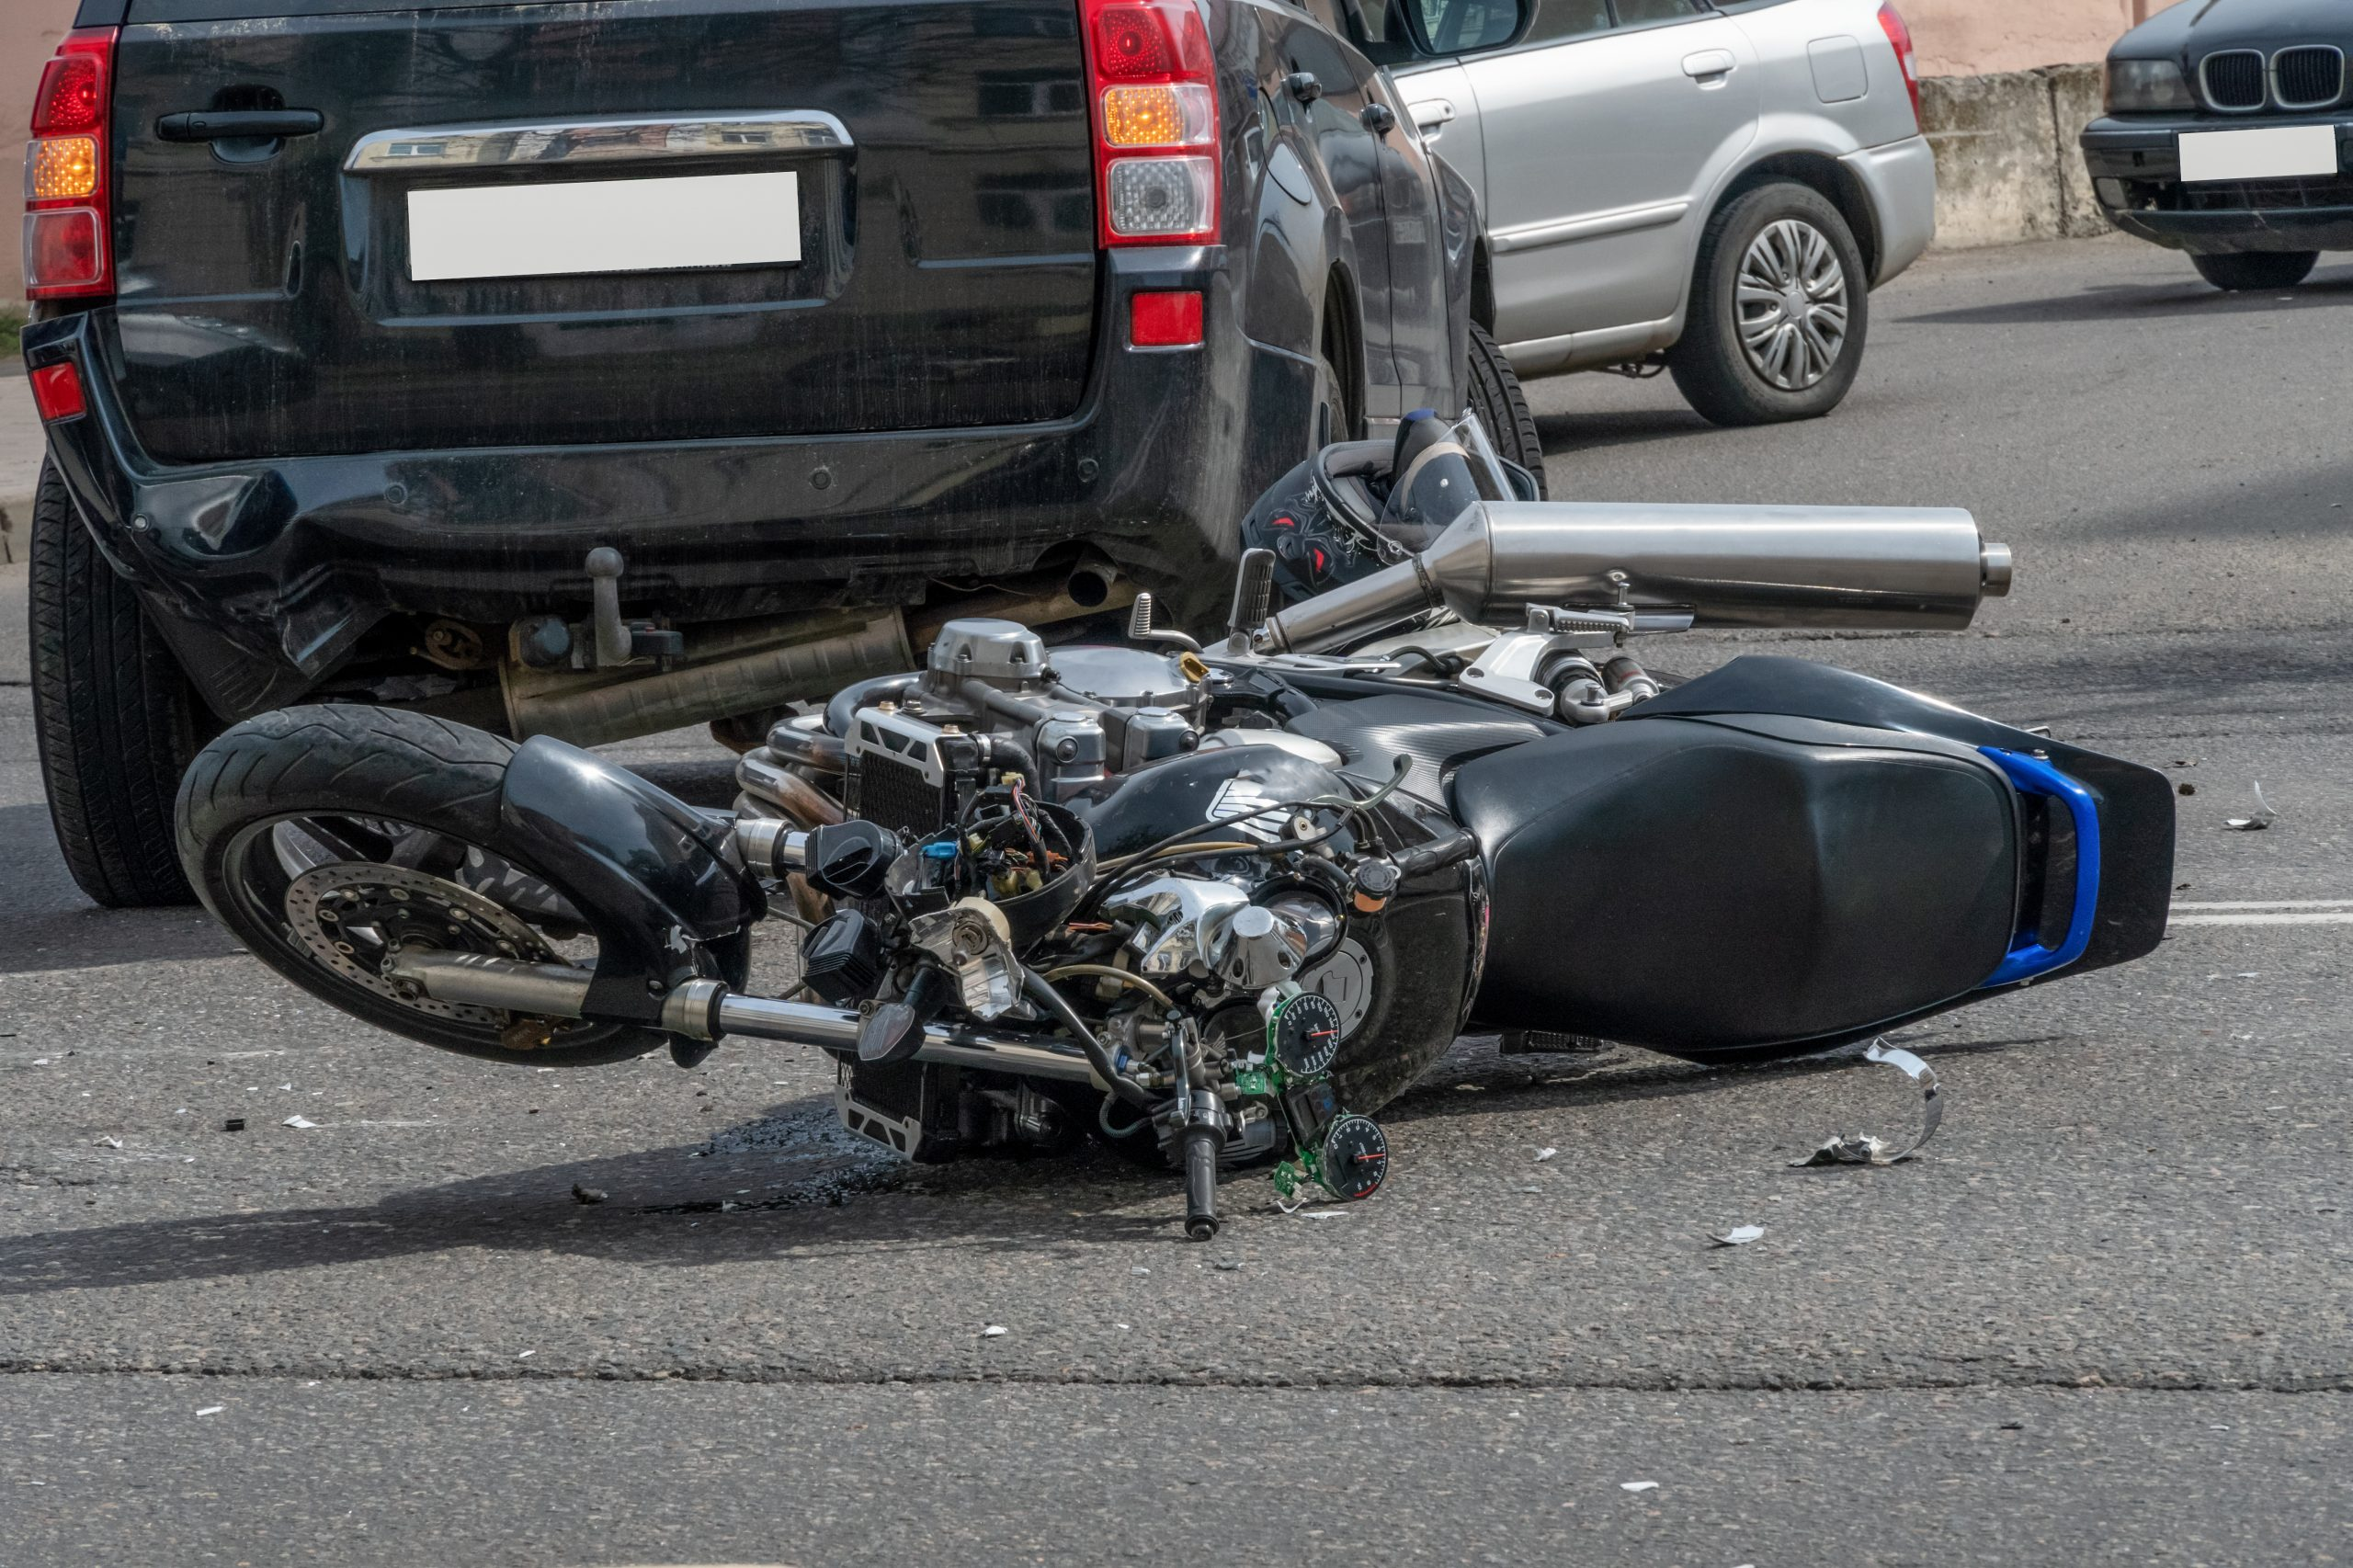 Motorcycle accident on roadway